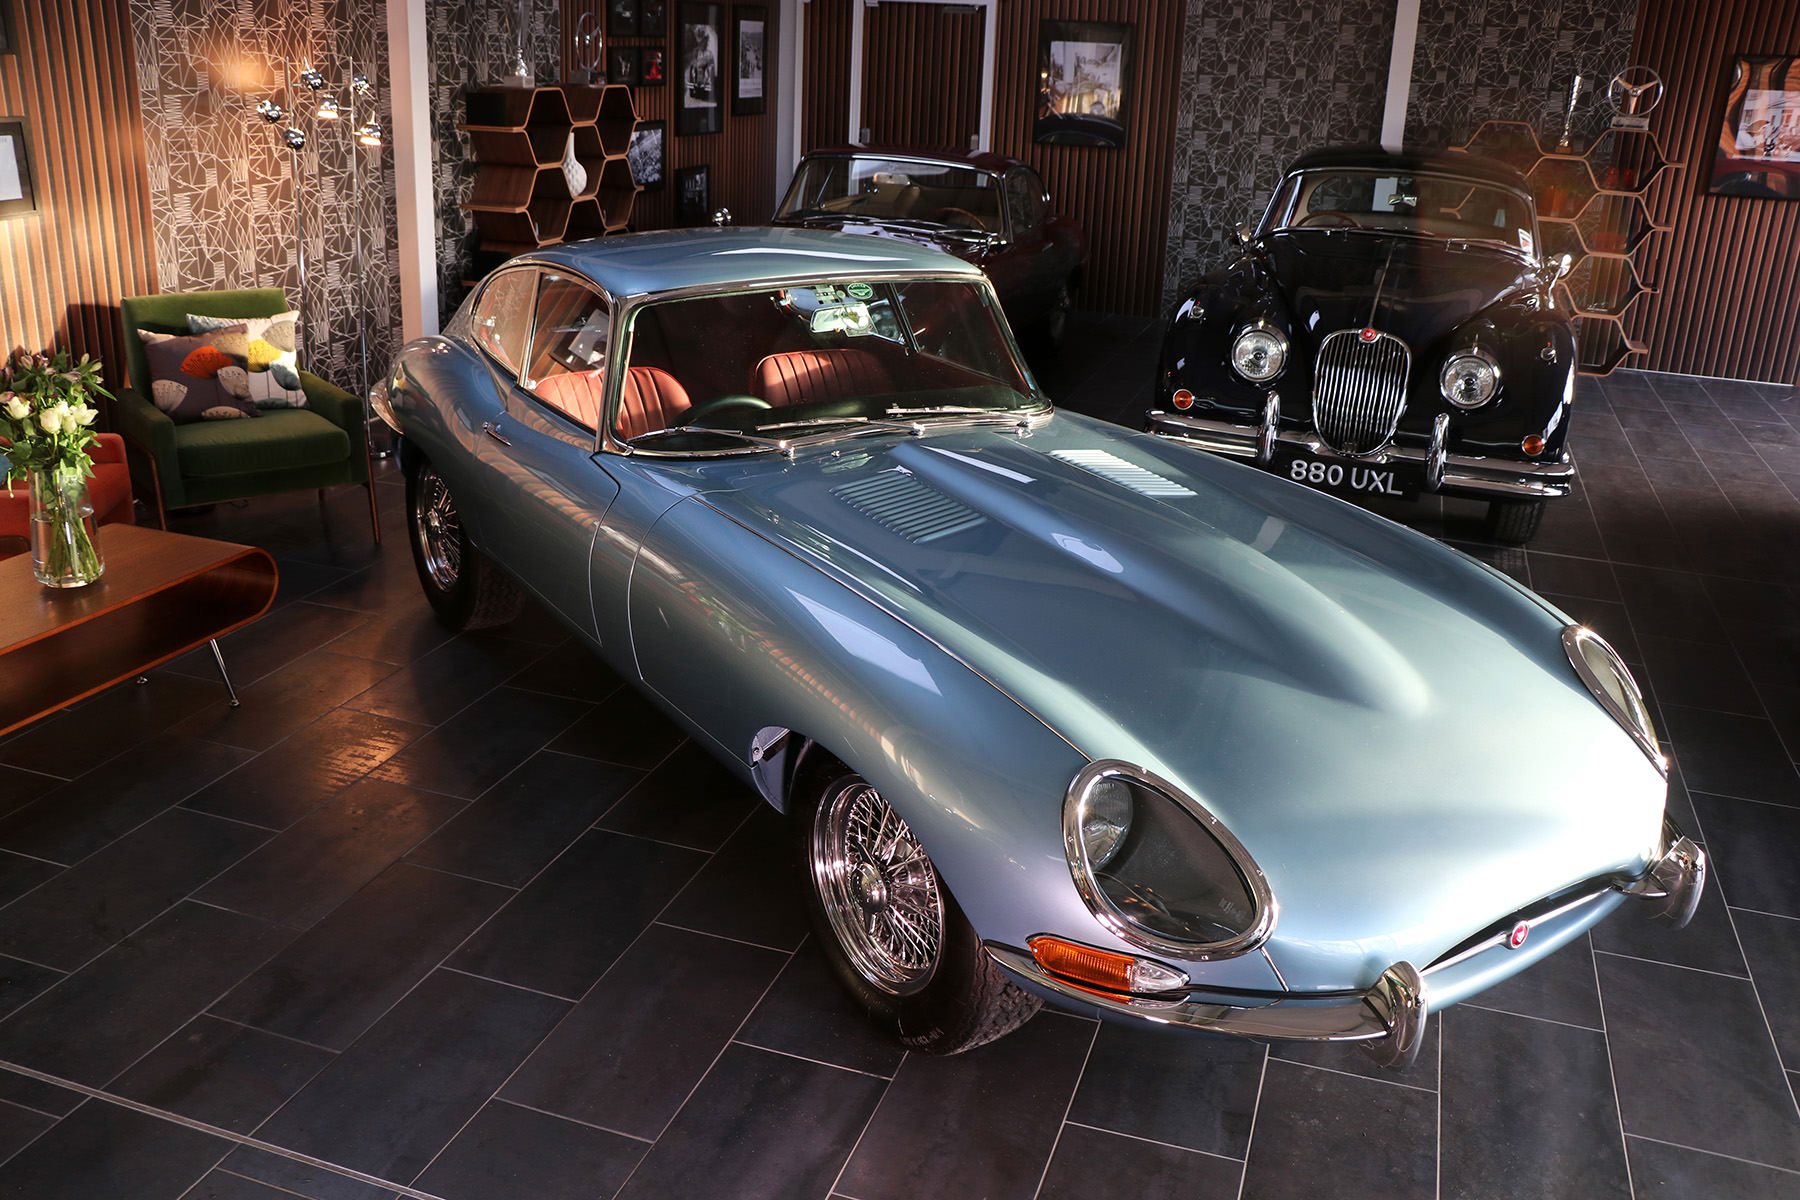 1966_opalescent_silver_blue_Jaguar_Sayer_etype_series _I_3_resized.jpg